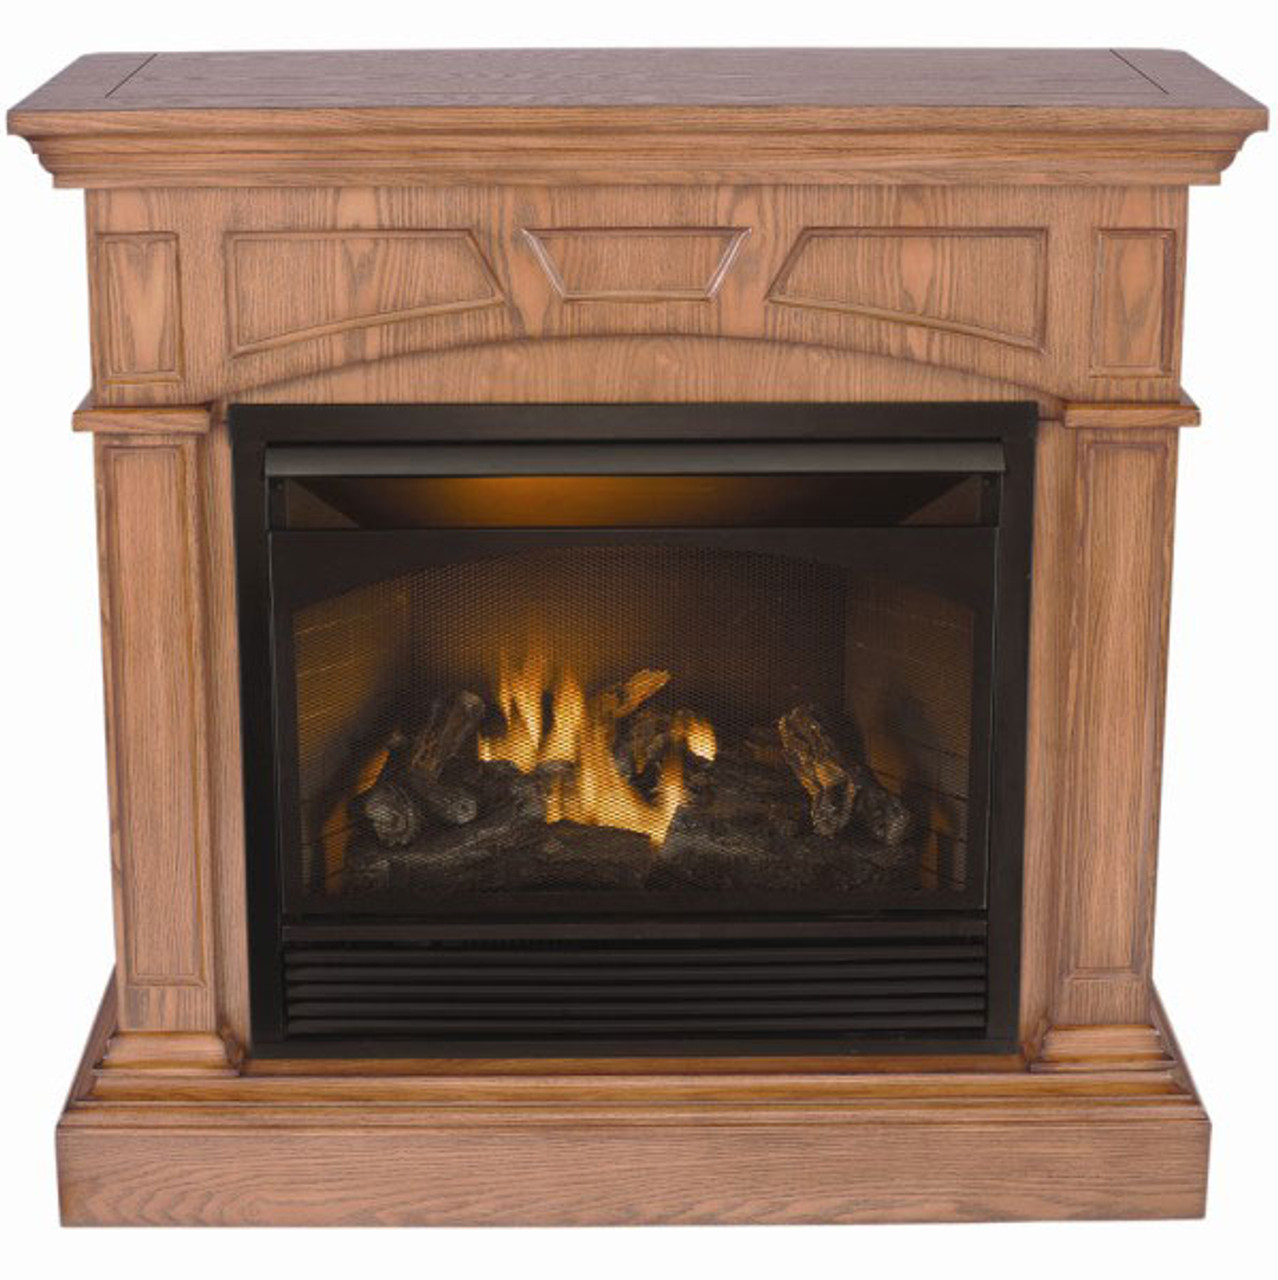 Pro Com Vent Free Dual Fuel Fireplace With Oak Cabinet 32